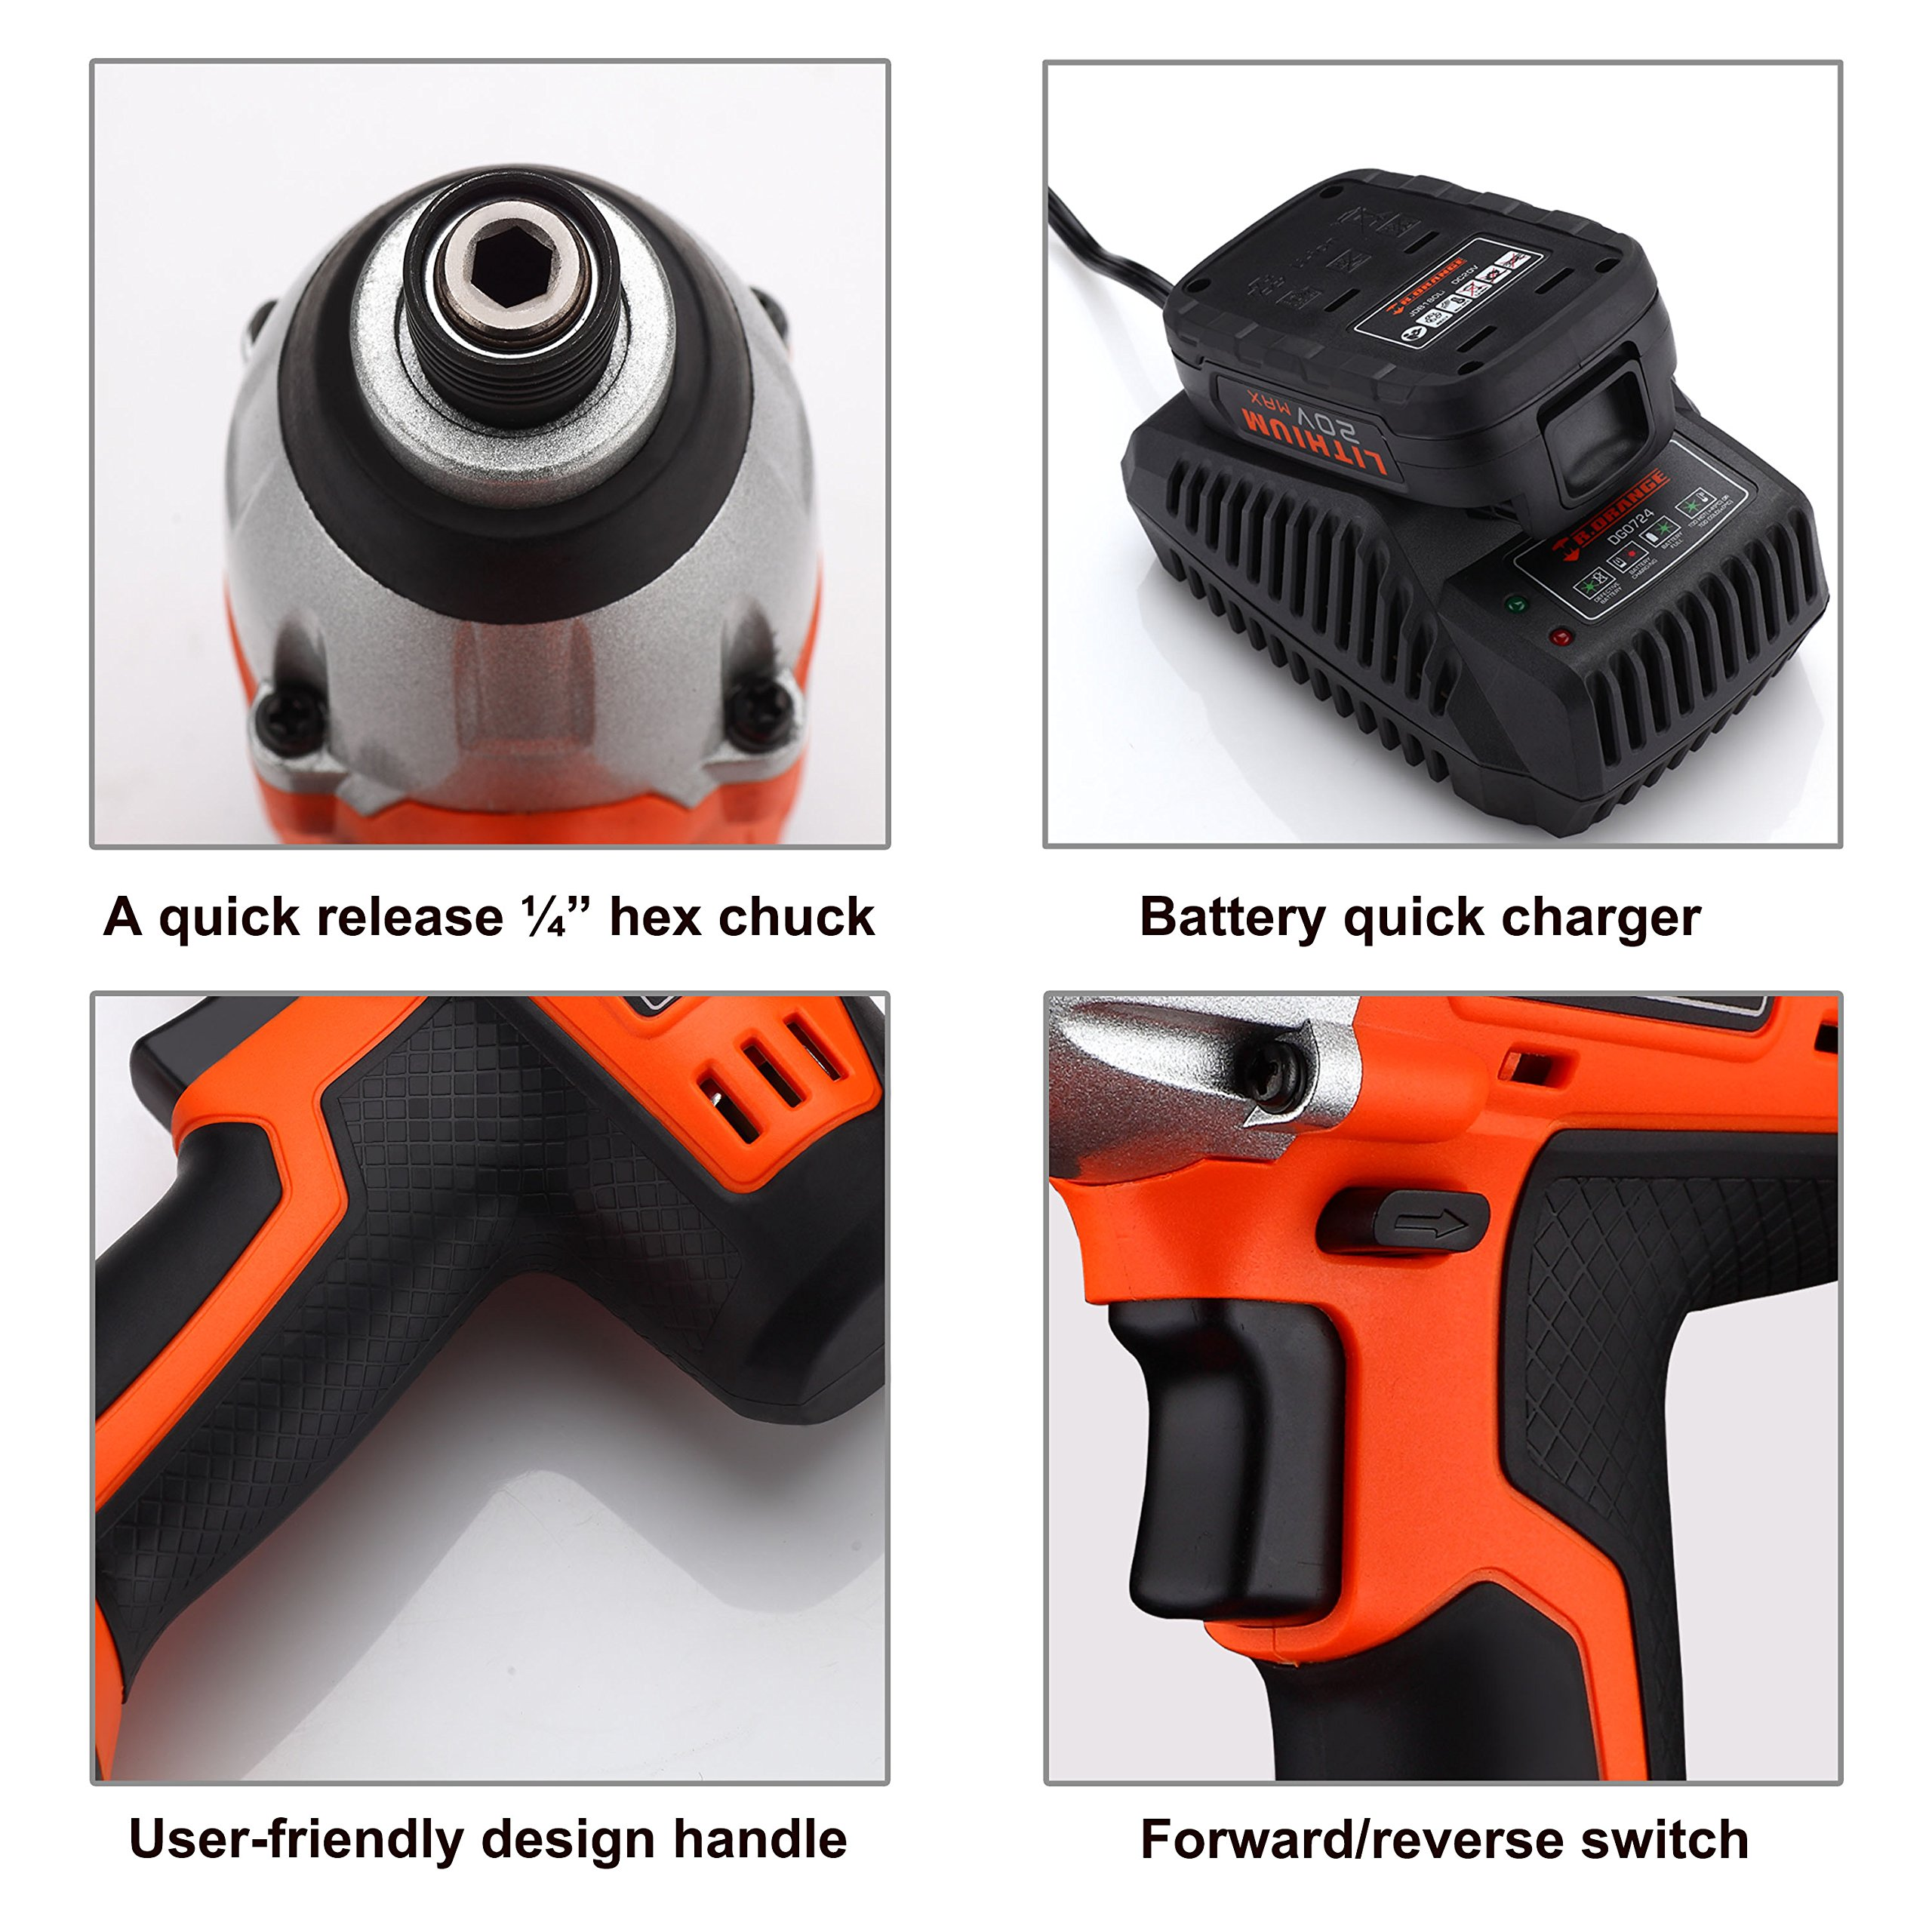 Mr.Orange 1/4 Inch 20V Lithium-Ion Cordless Impact Driver Kit with Quick Charger and Battery Includes Durable Gloves 2 pcs socket driver bits and Soft Tool Bag by Mr.Orange (Image #5)